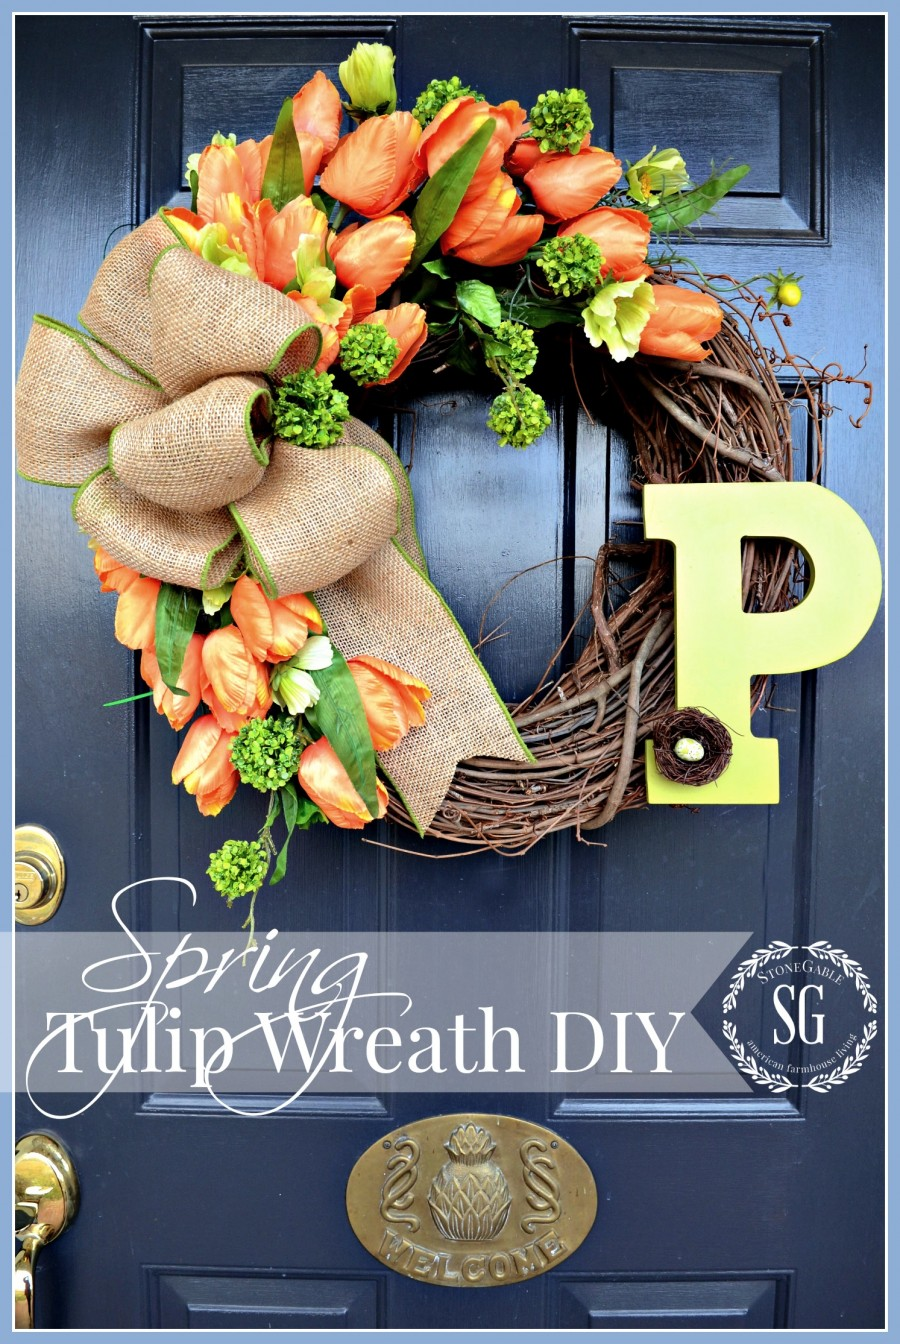 SPRING TULIP WREATH DIY-Dress your door this year with a WOW factor wreath-stonegableblog.com